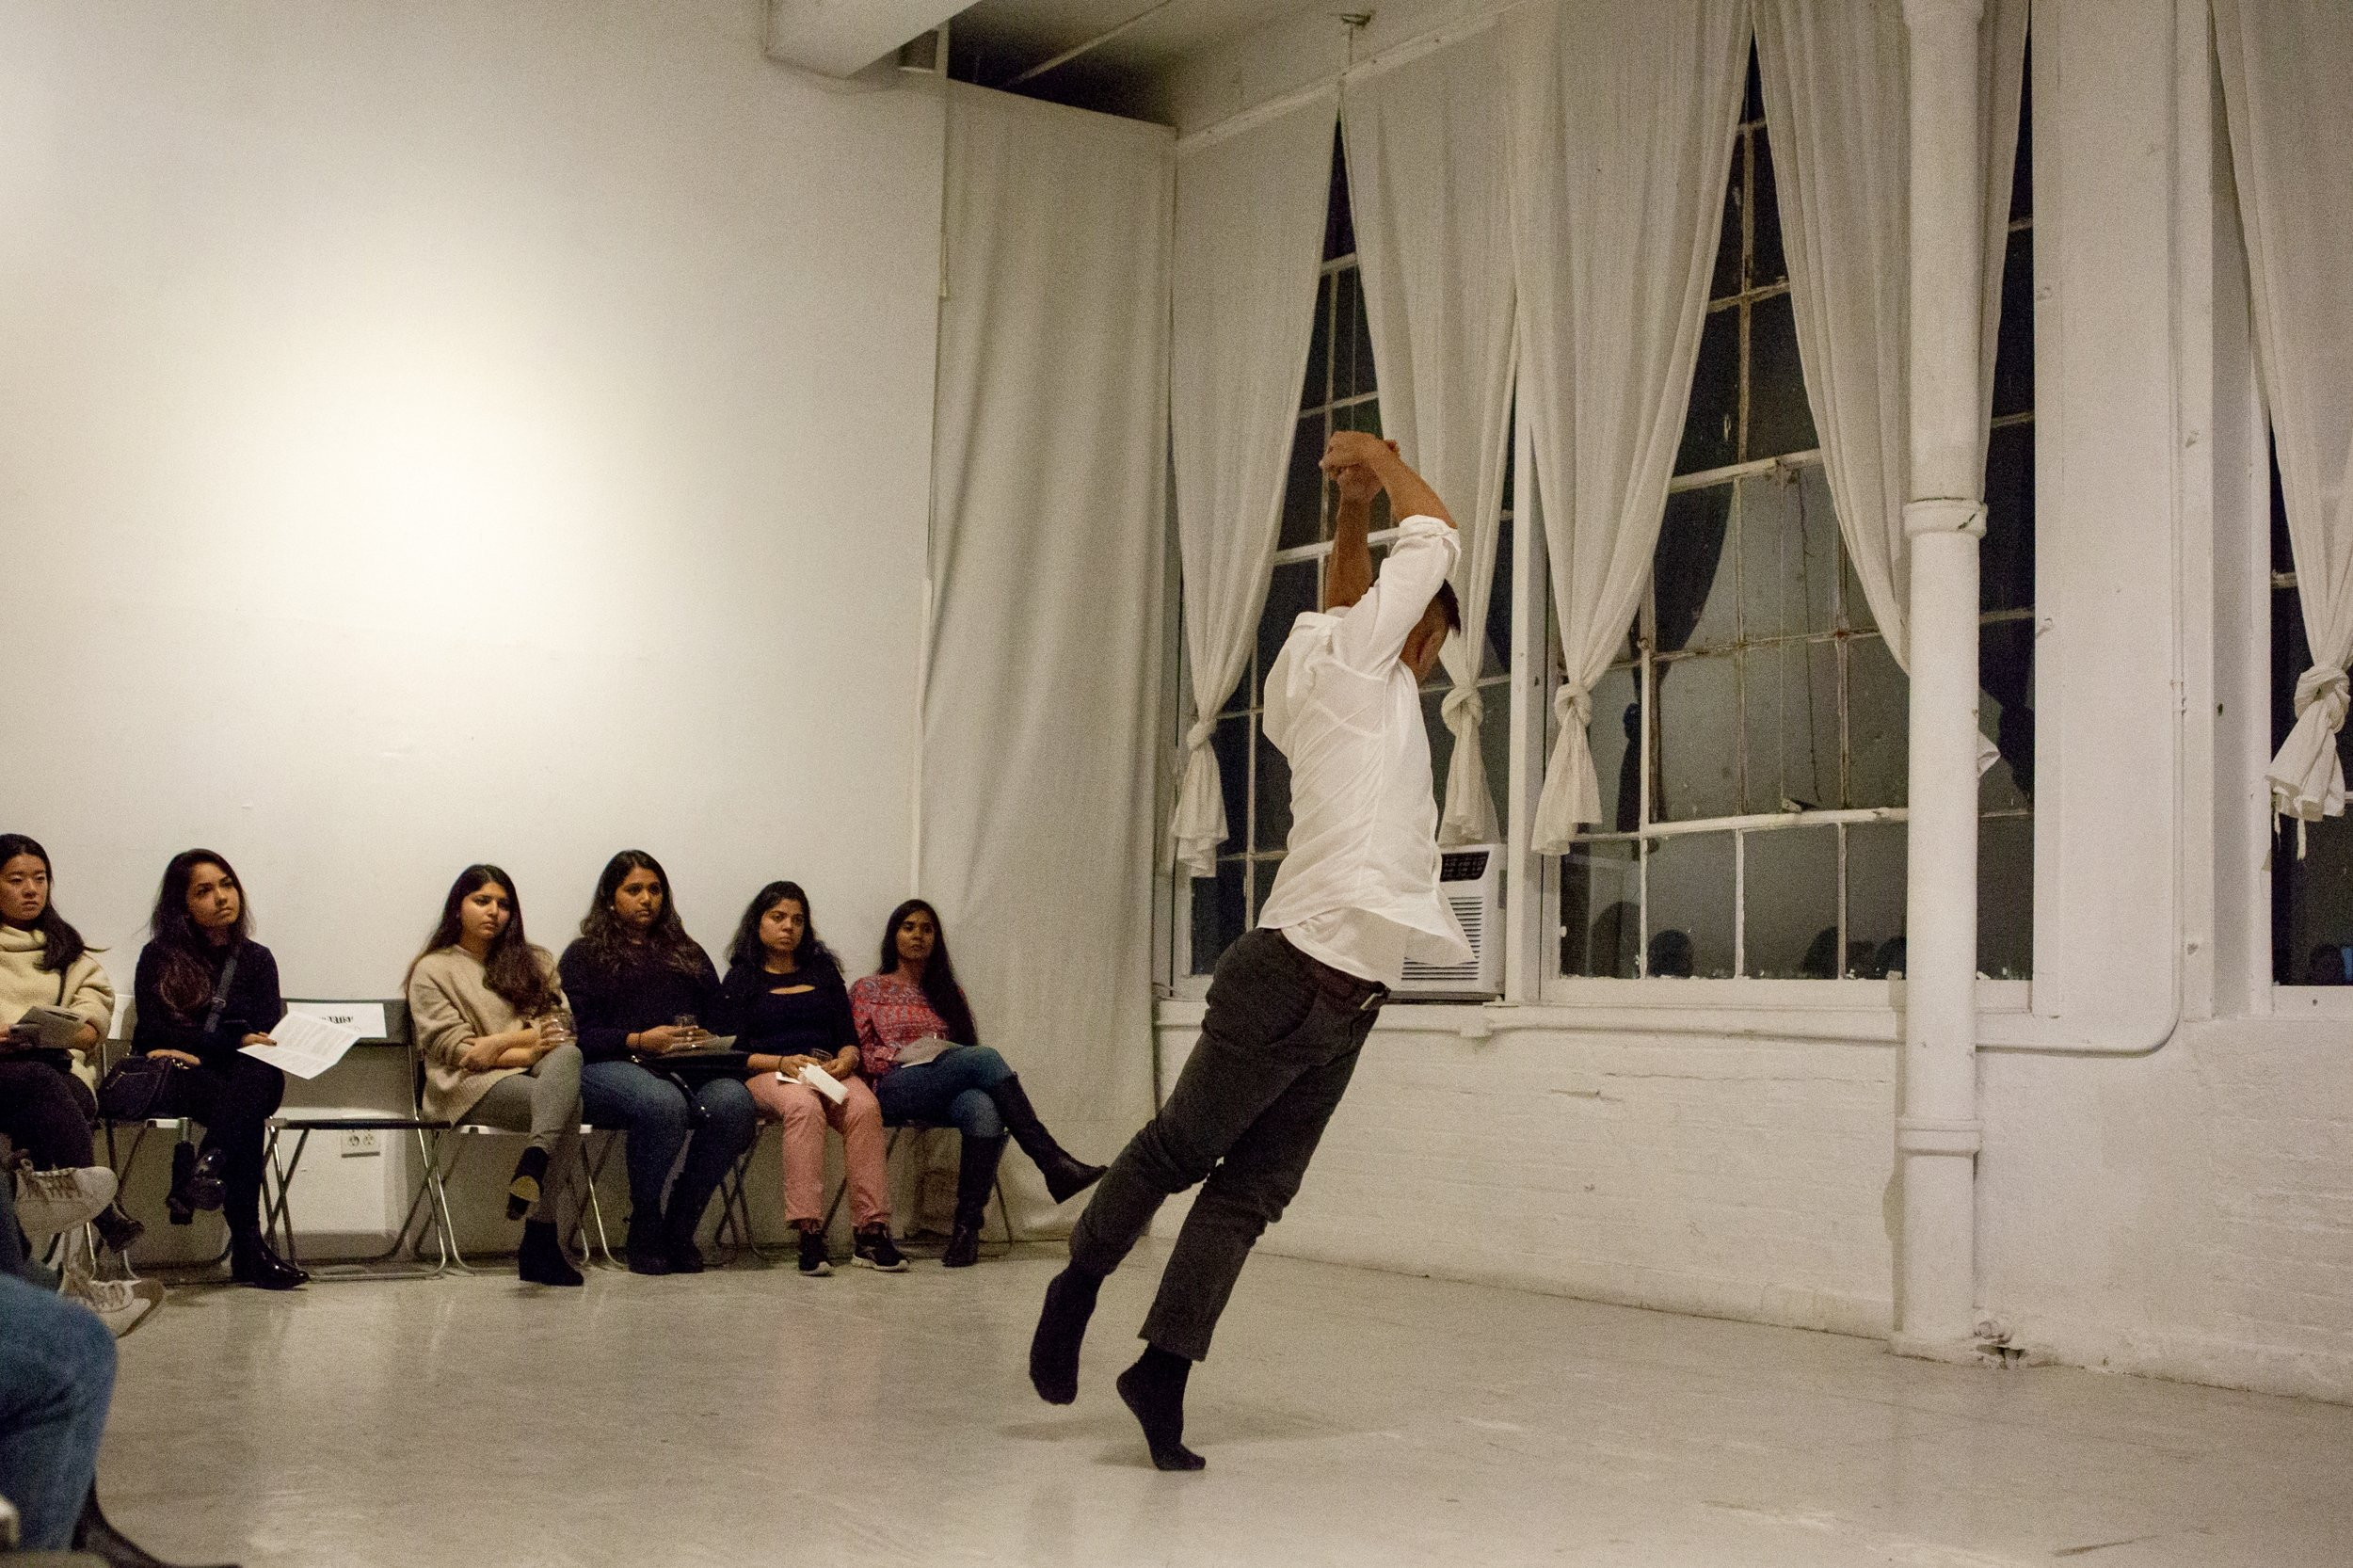 Peter Cheng performs at a recent Hi Artist event